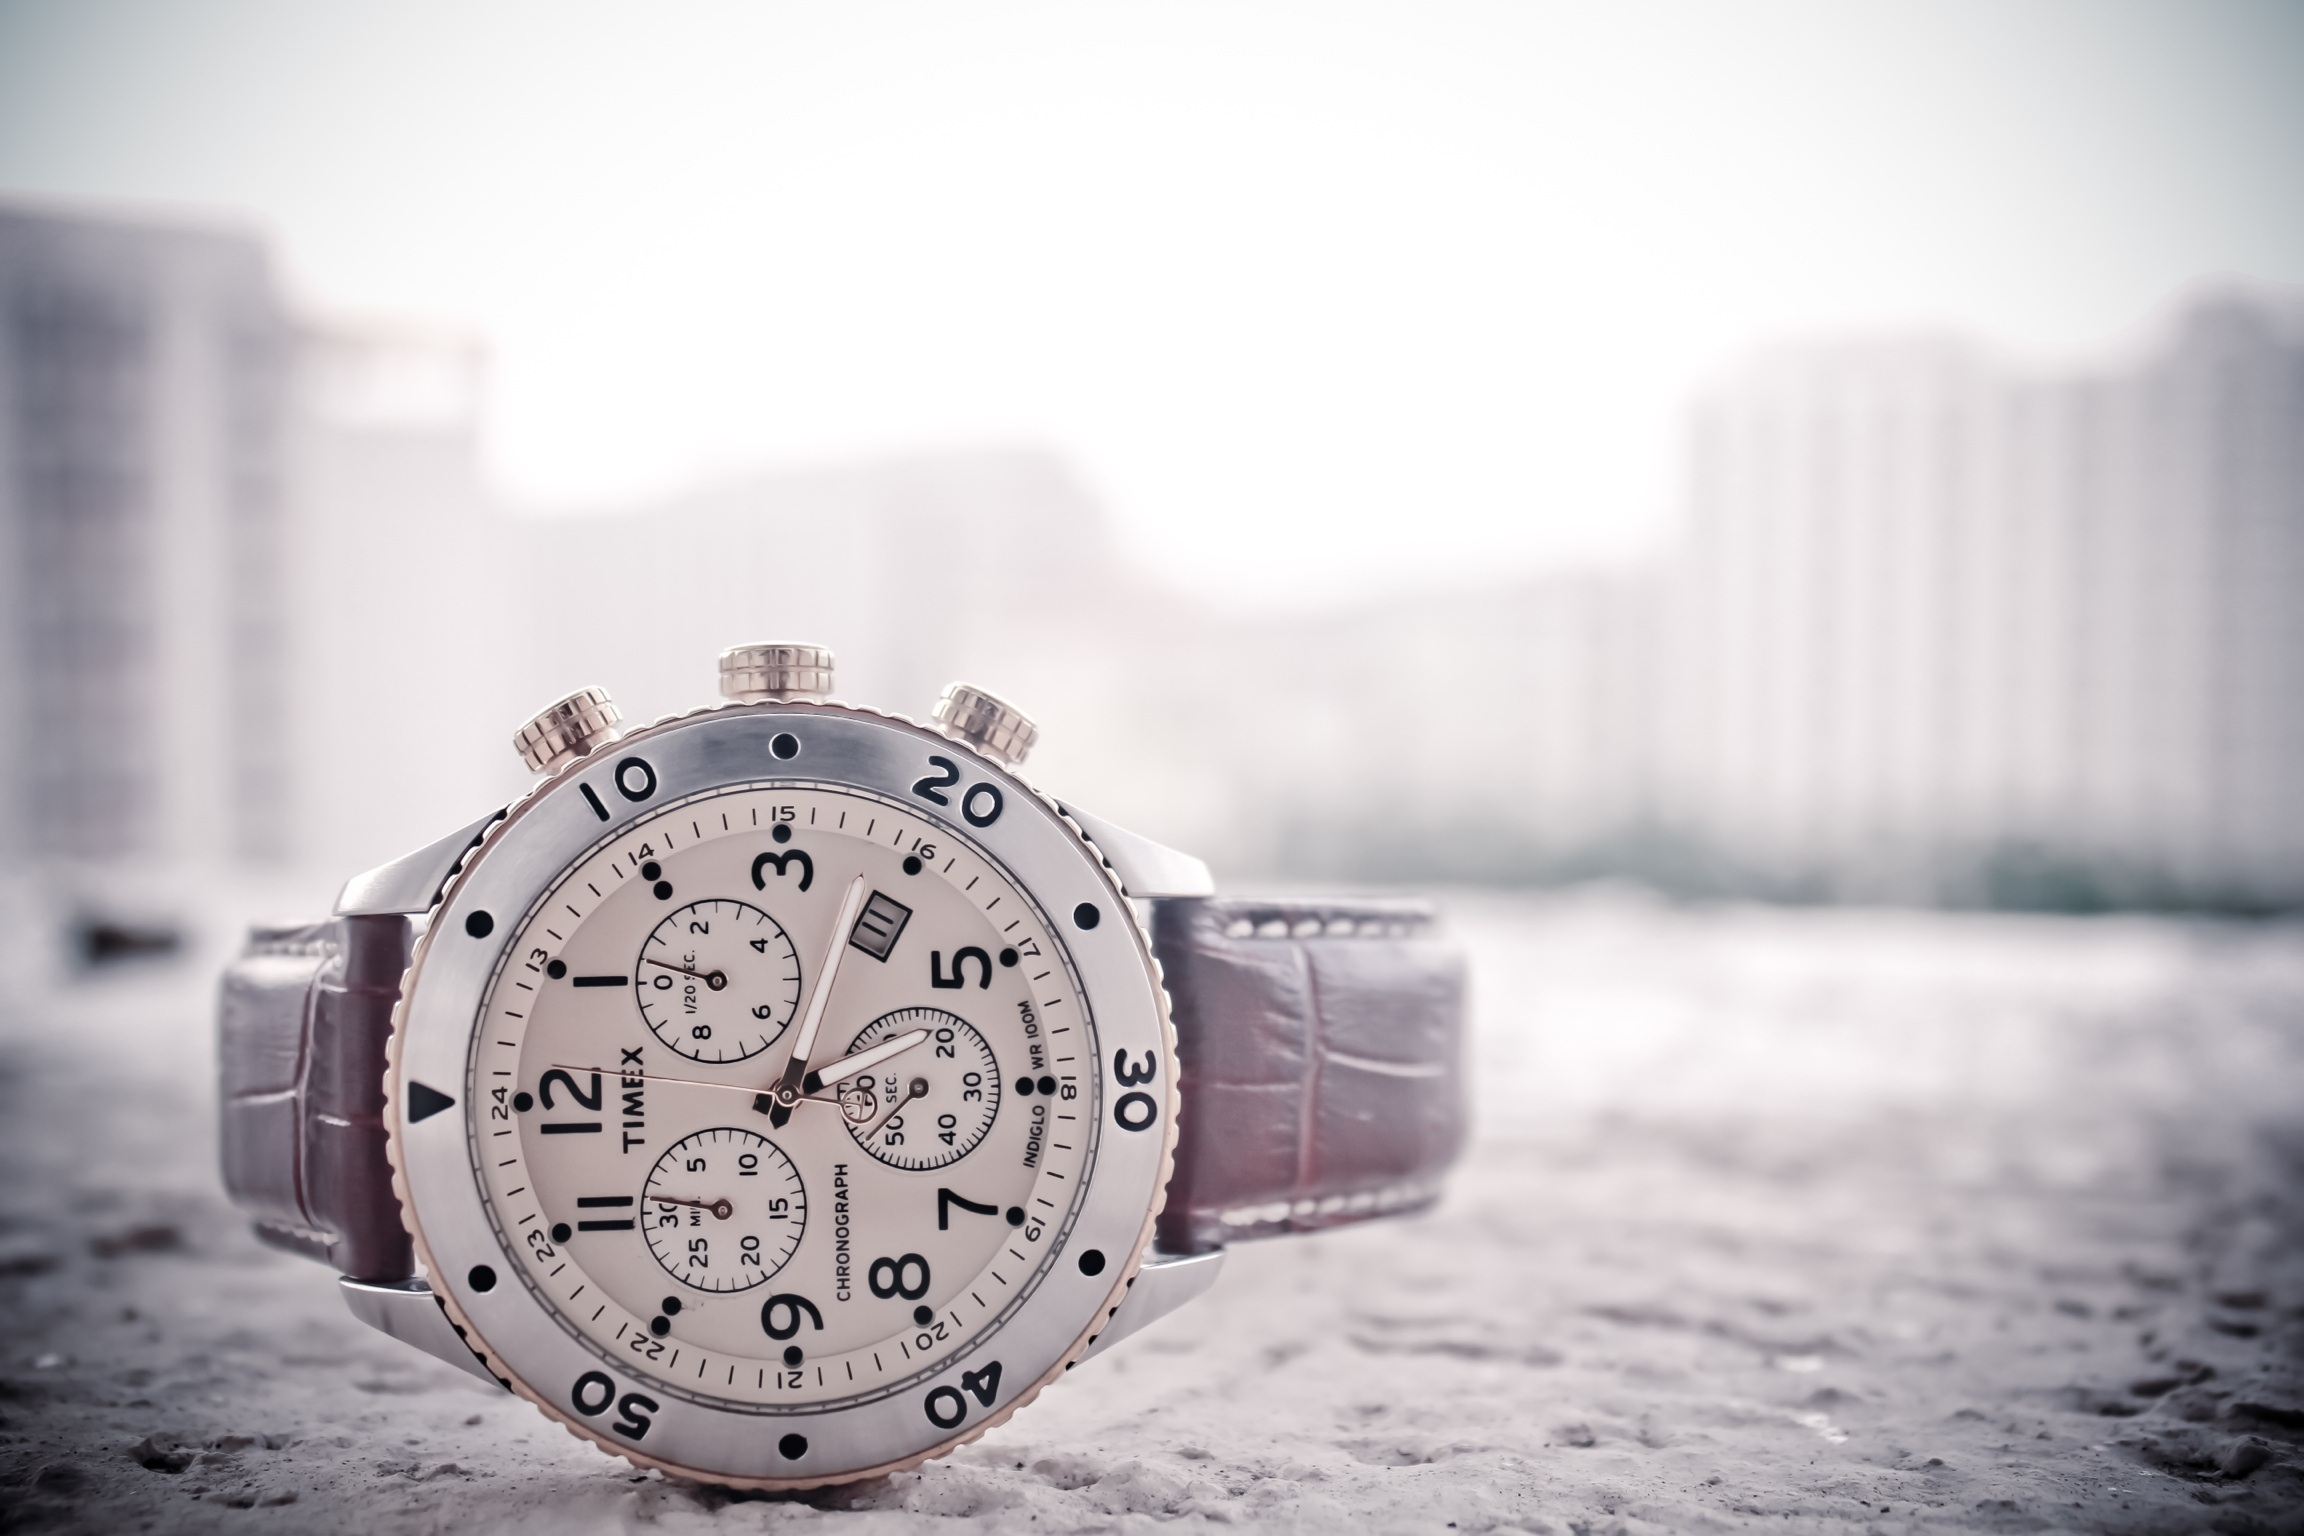 3 Ways To Show Your Style With A Unique Watch